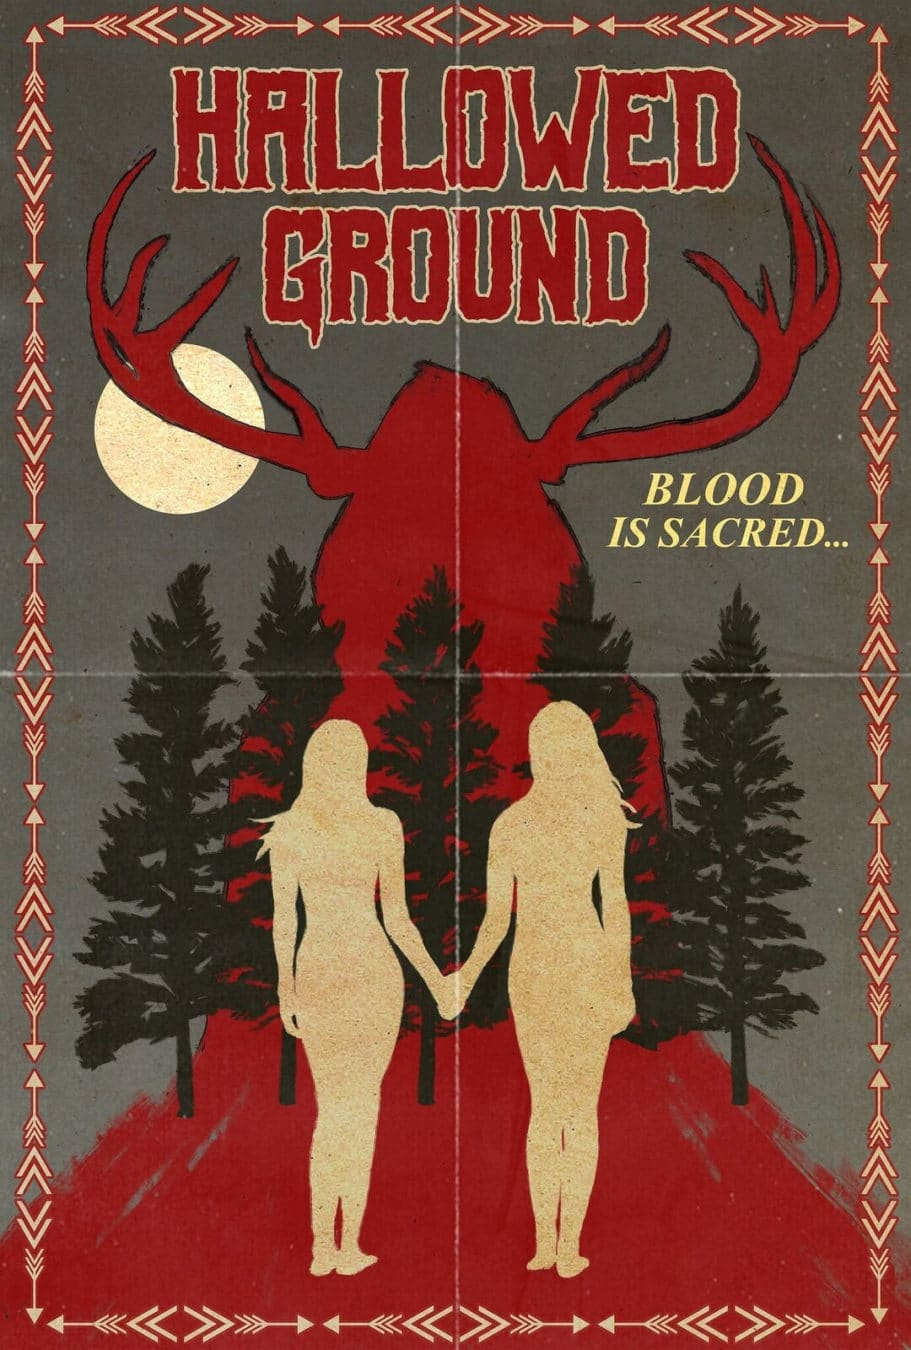 hallowed ground poster 2019